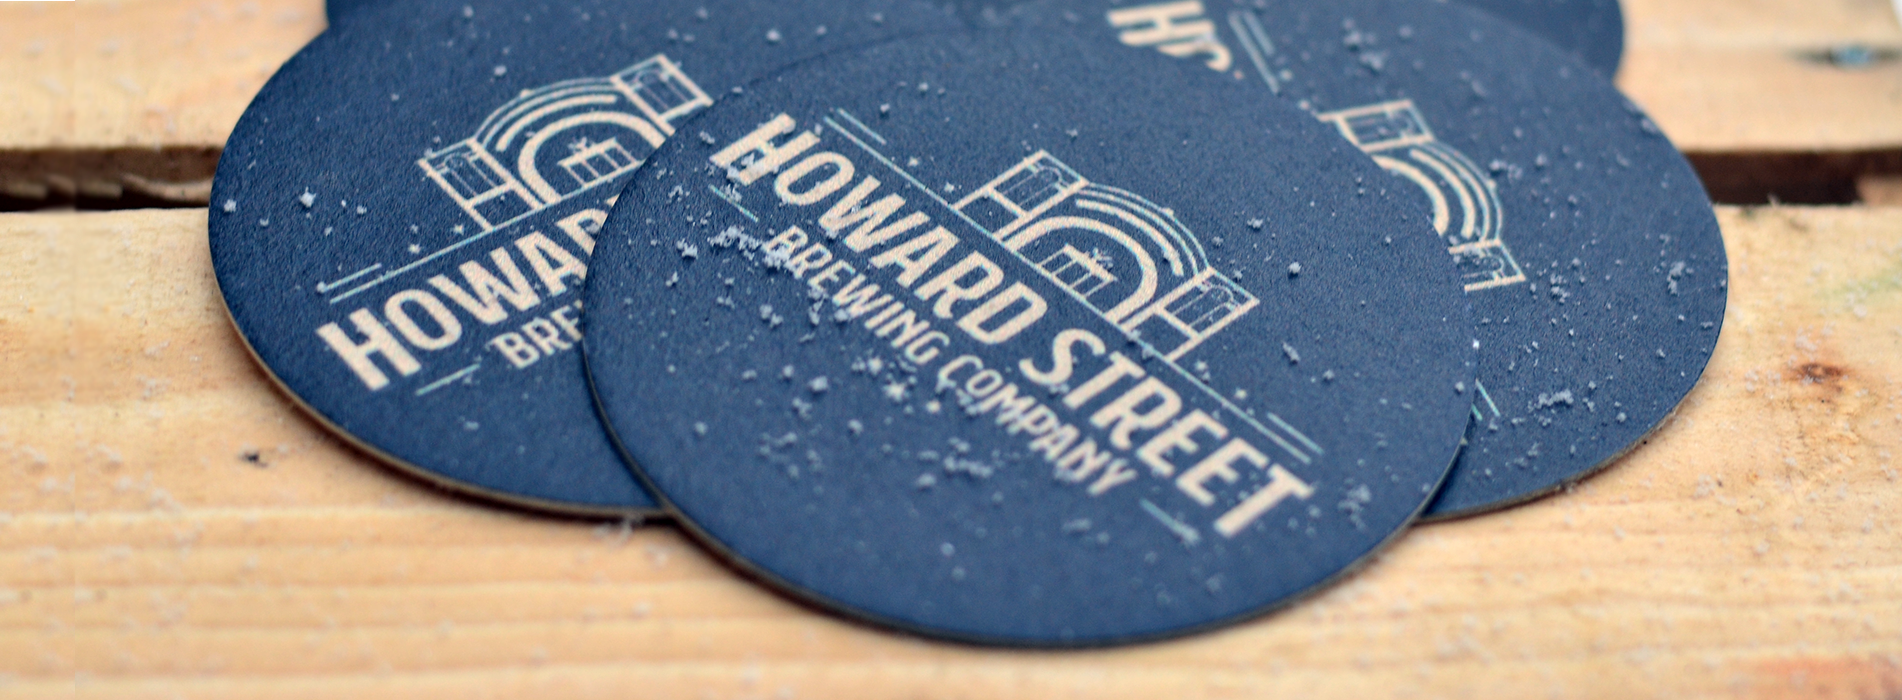 howard_street_brewing_company_beer_and_coaster.png